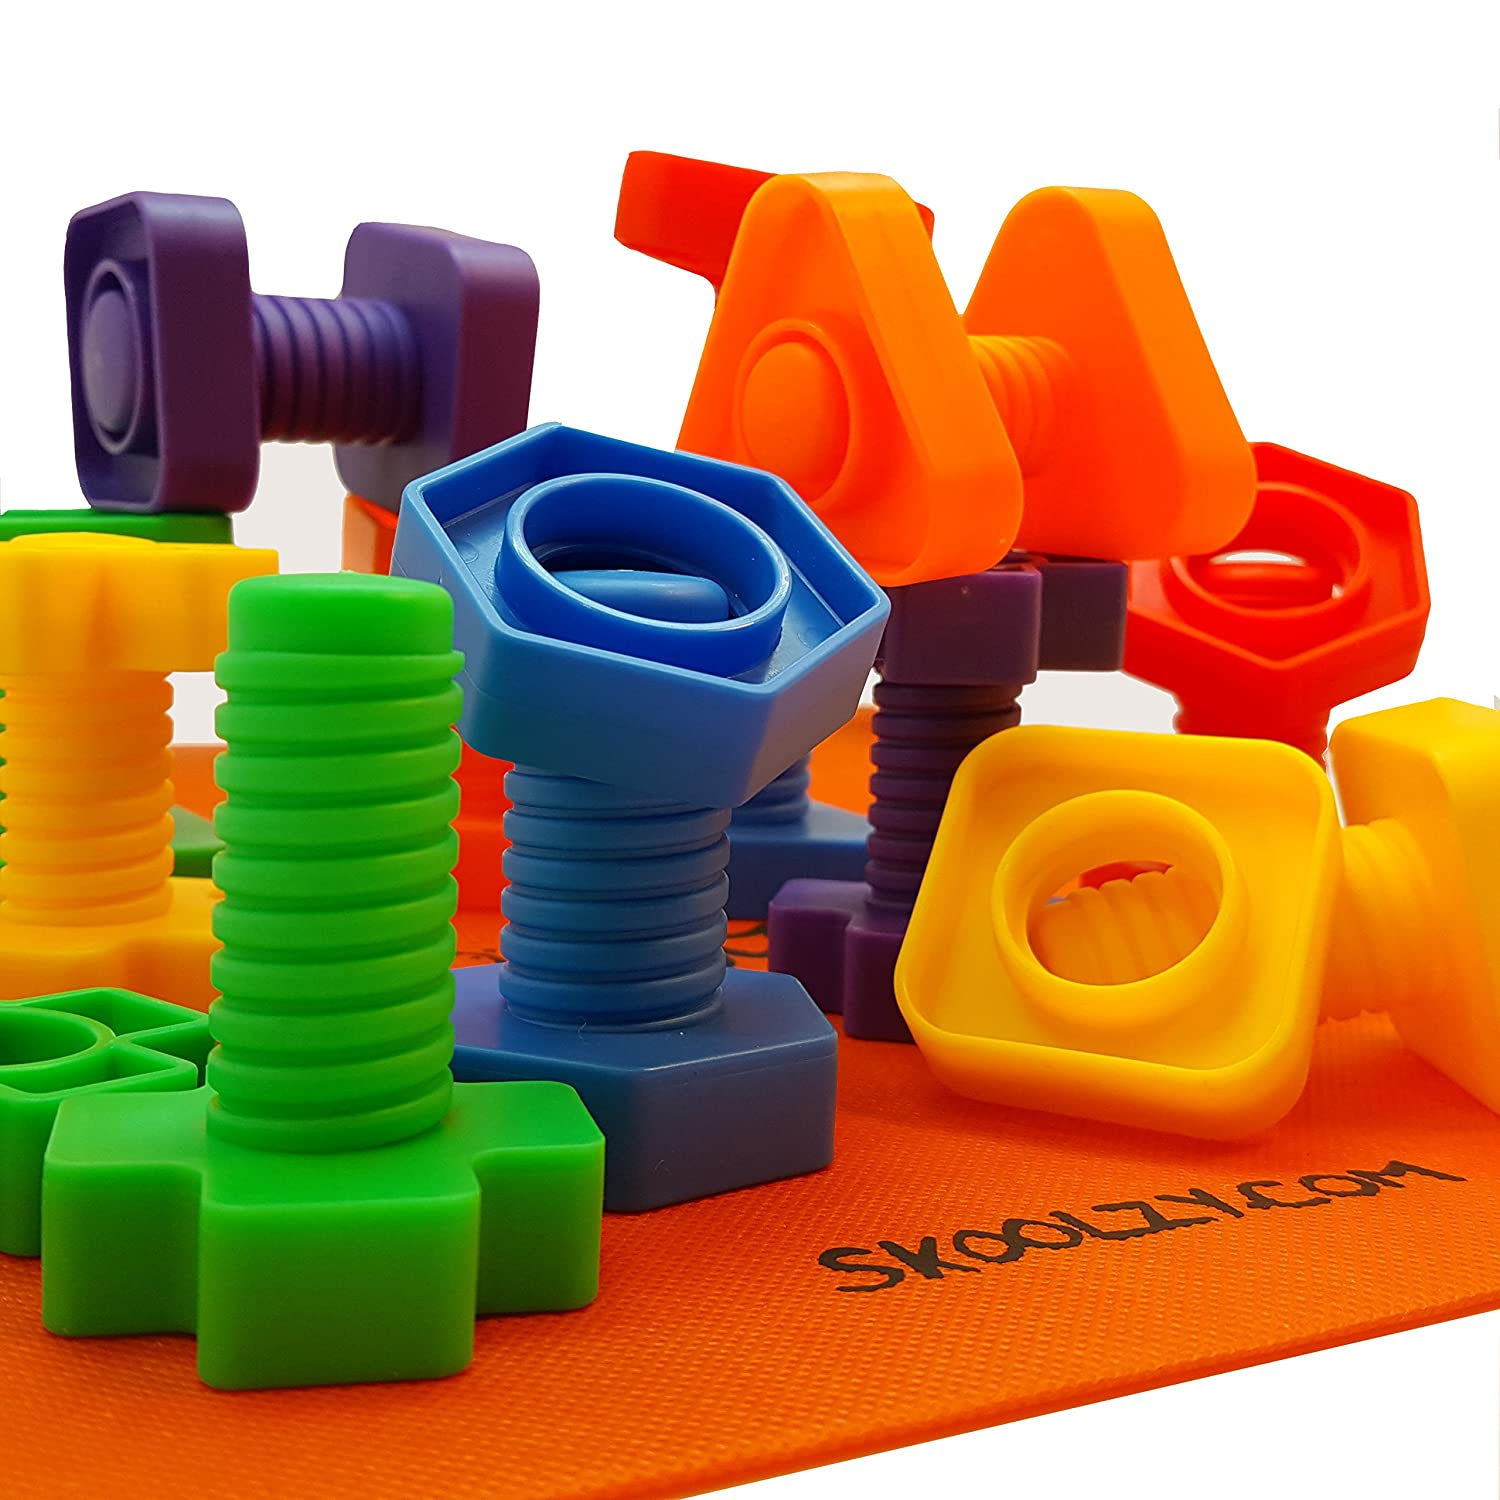 Nuts and Bolts Fine Motor Skills - Skoolzy Occupational Therapy Toddler Toys - Montessori Building Construction Kids Matching Game for Preschoolers - Jumbo 24 pc Set with Backpack & Activity Download Review